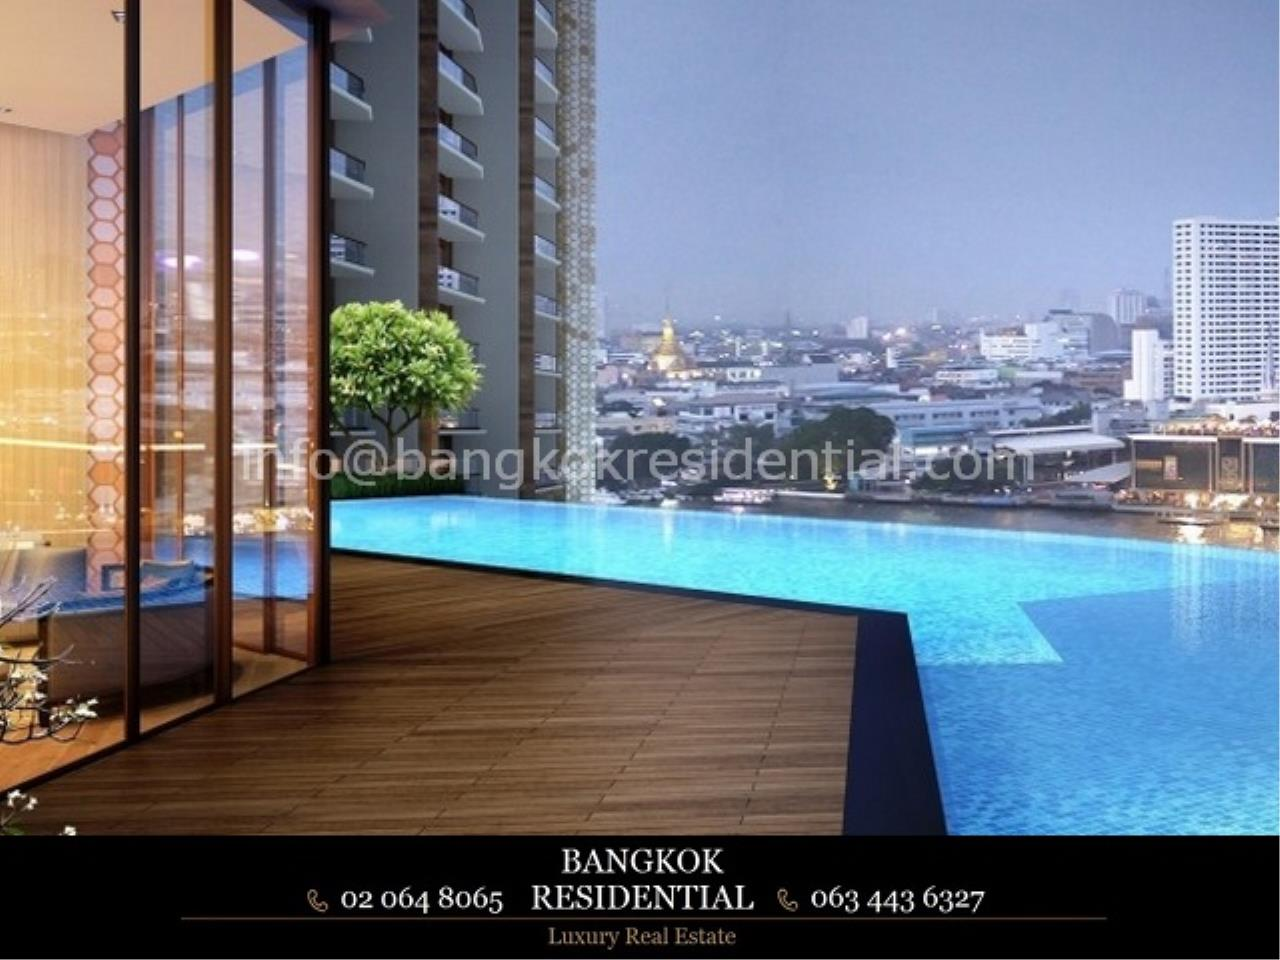 Bangkok Residential Agency's 3BR Magnolia Waterfront Residence For Sale (BR6791CD) 1